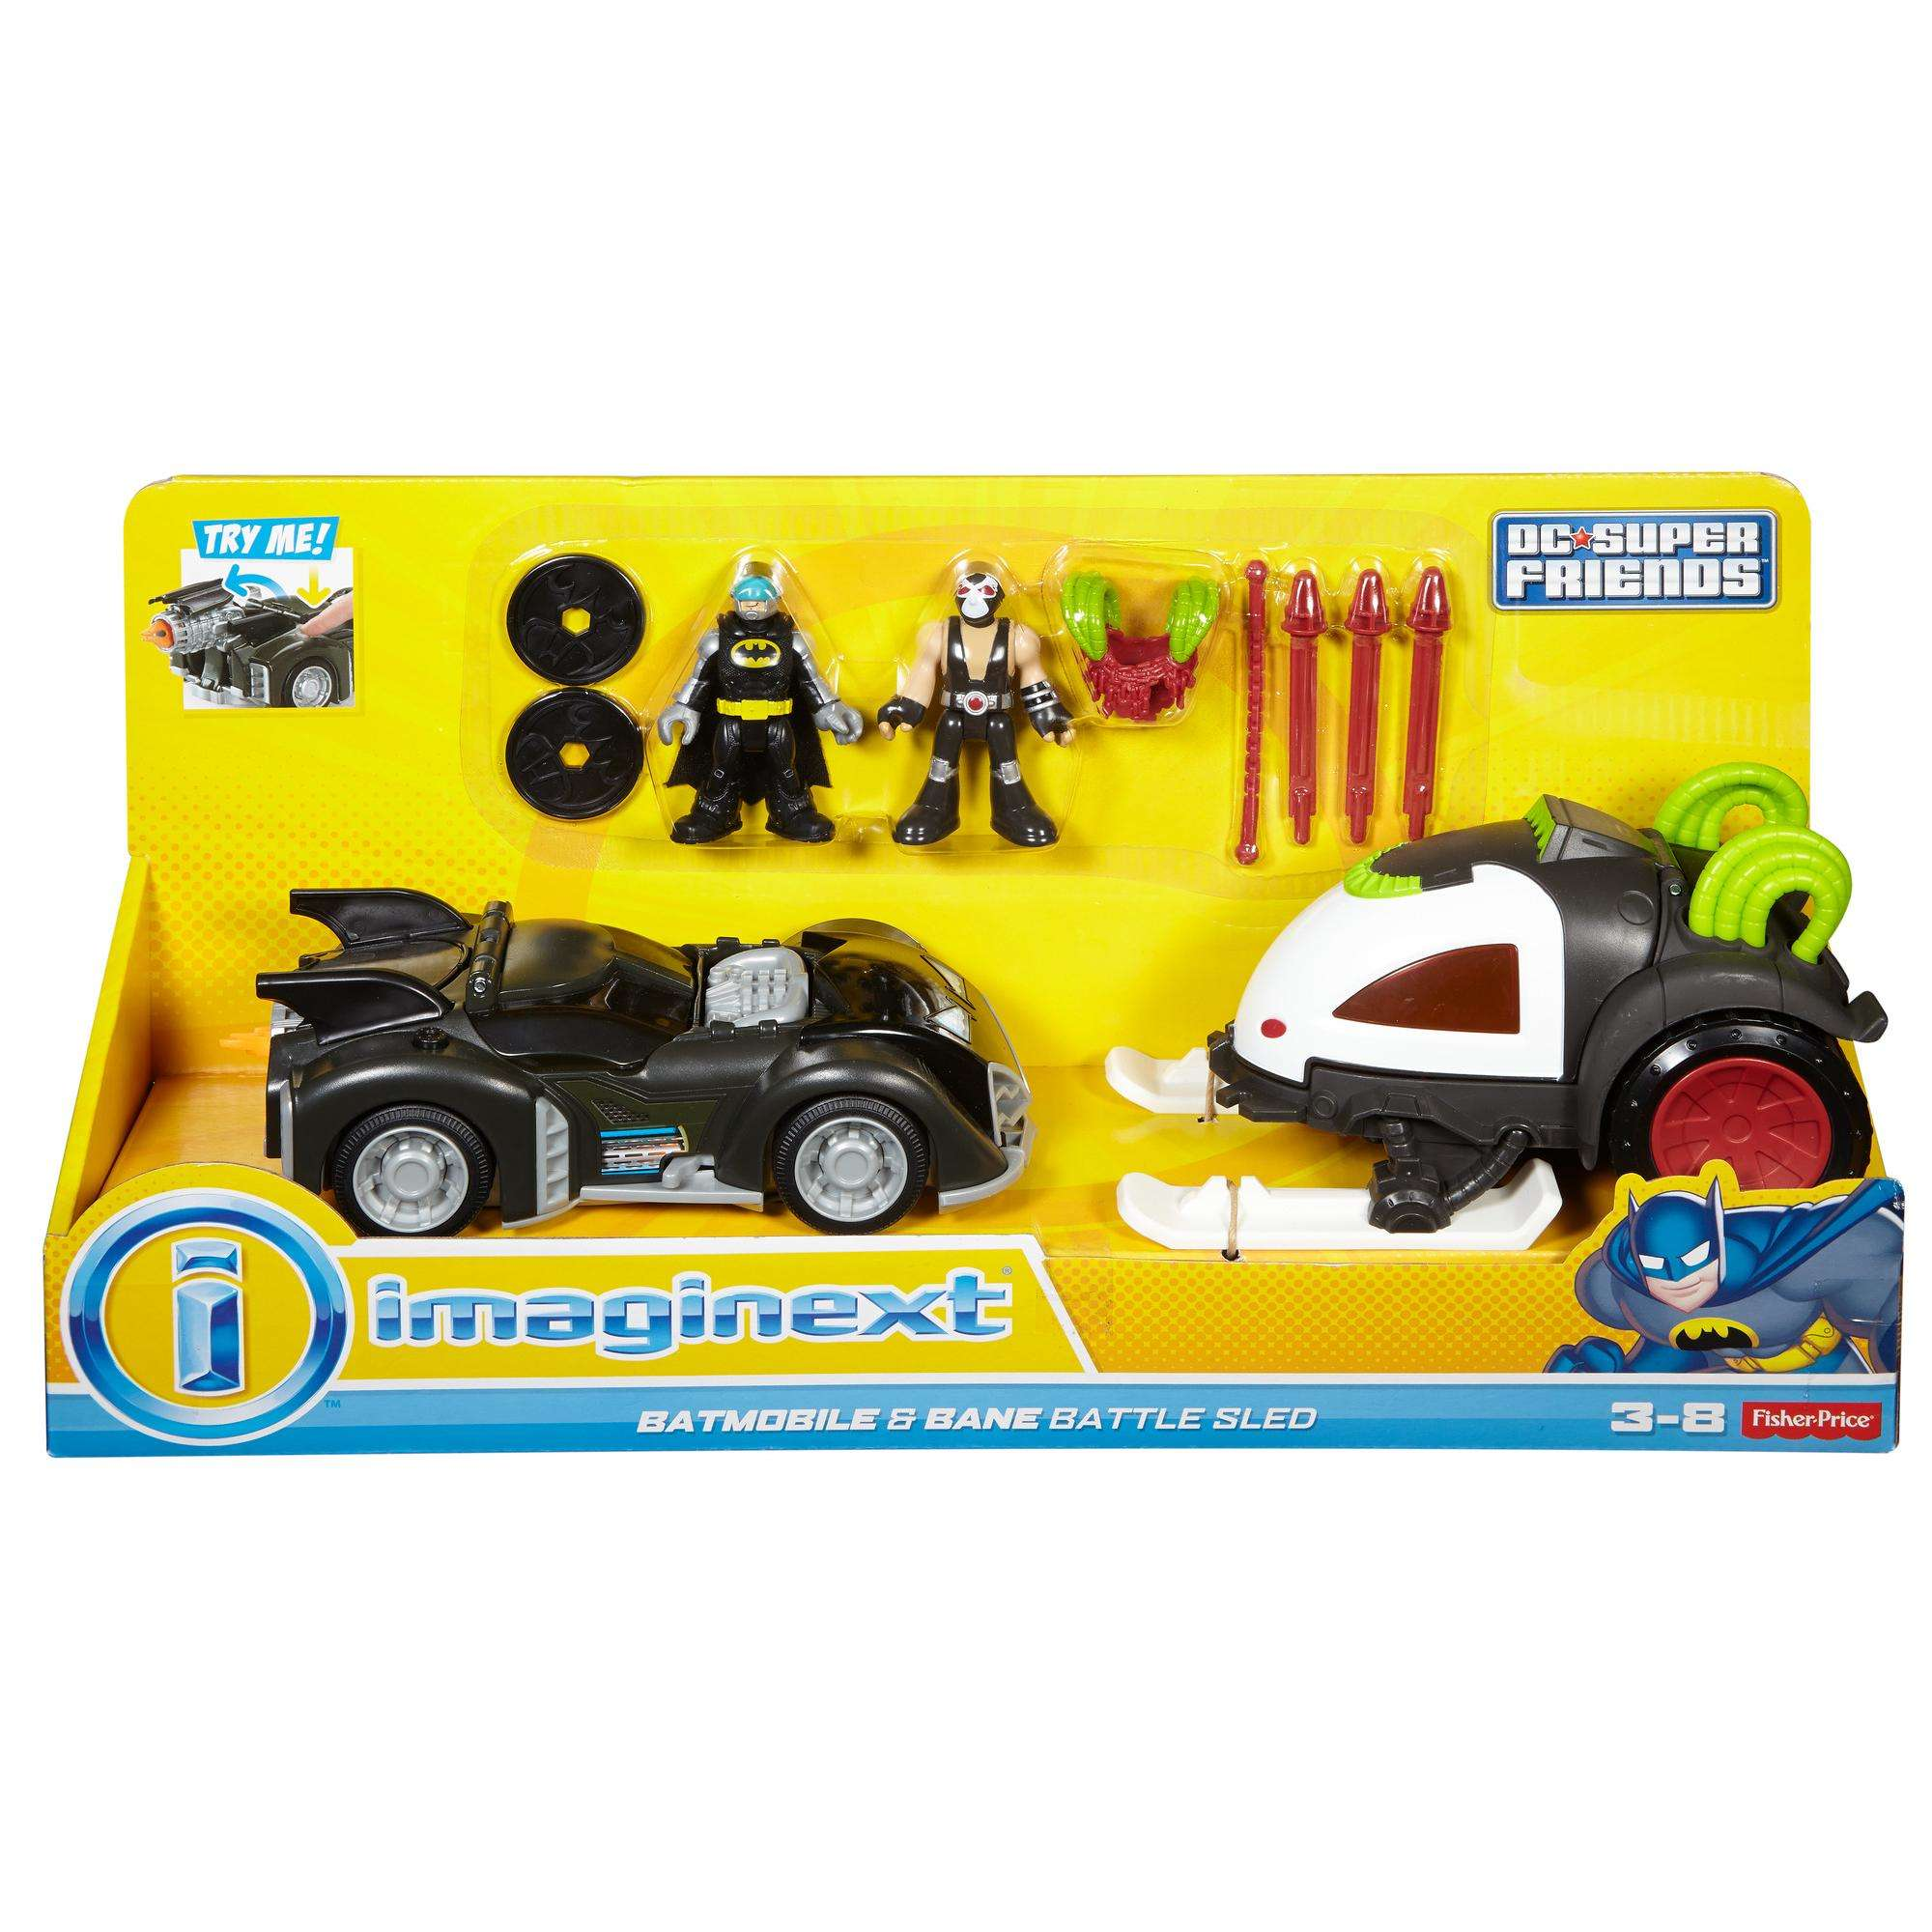 Imaginext Batmobile and Bane Battle Sled Action Figures